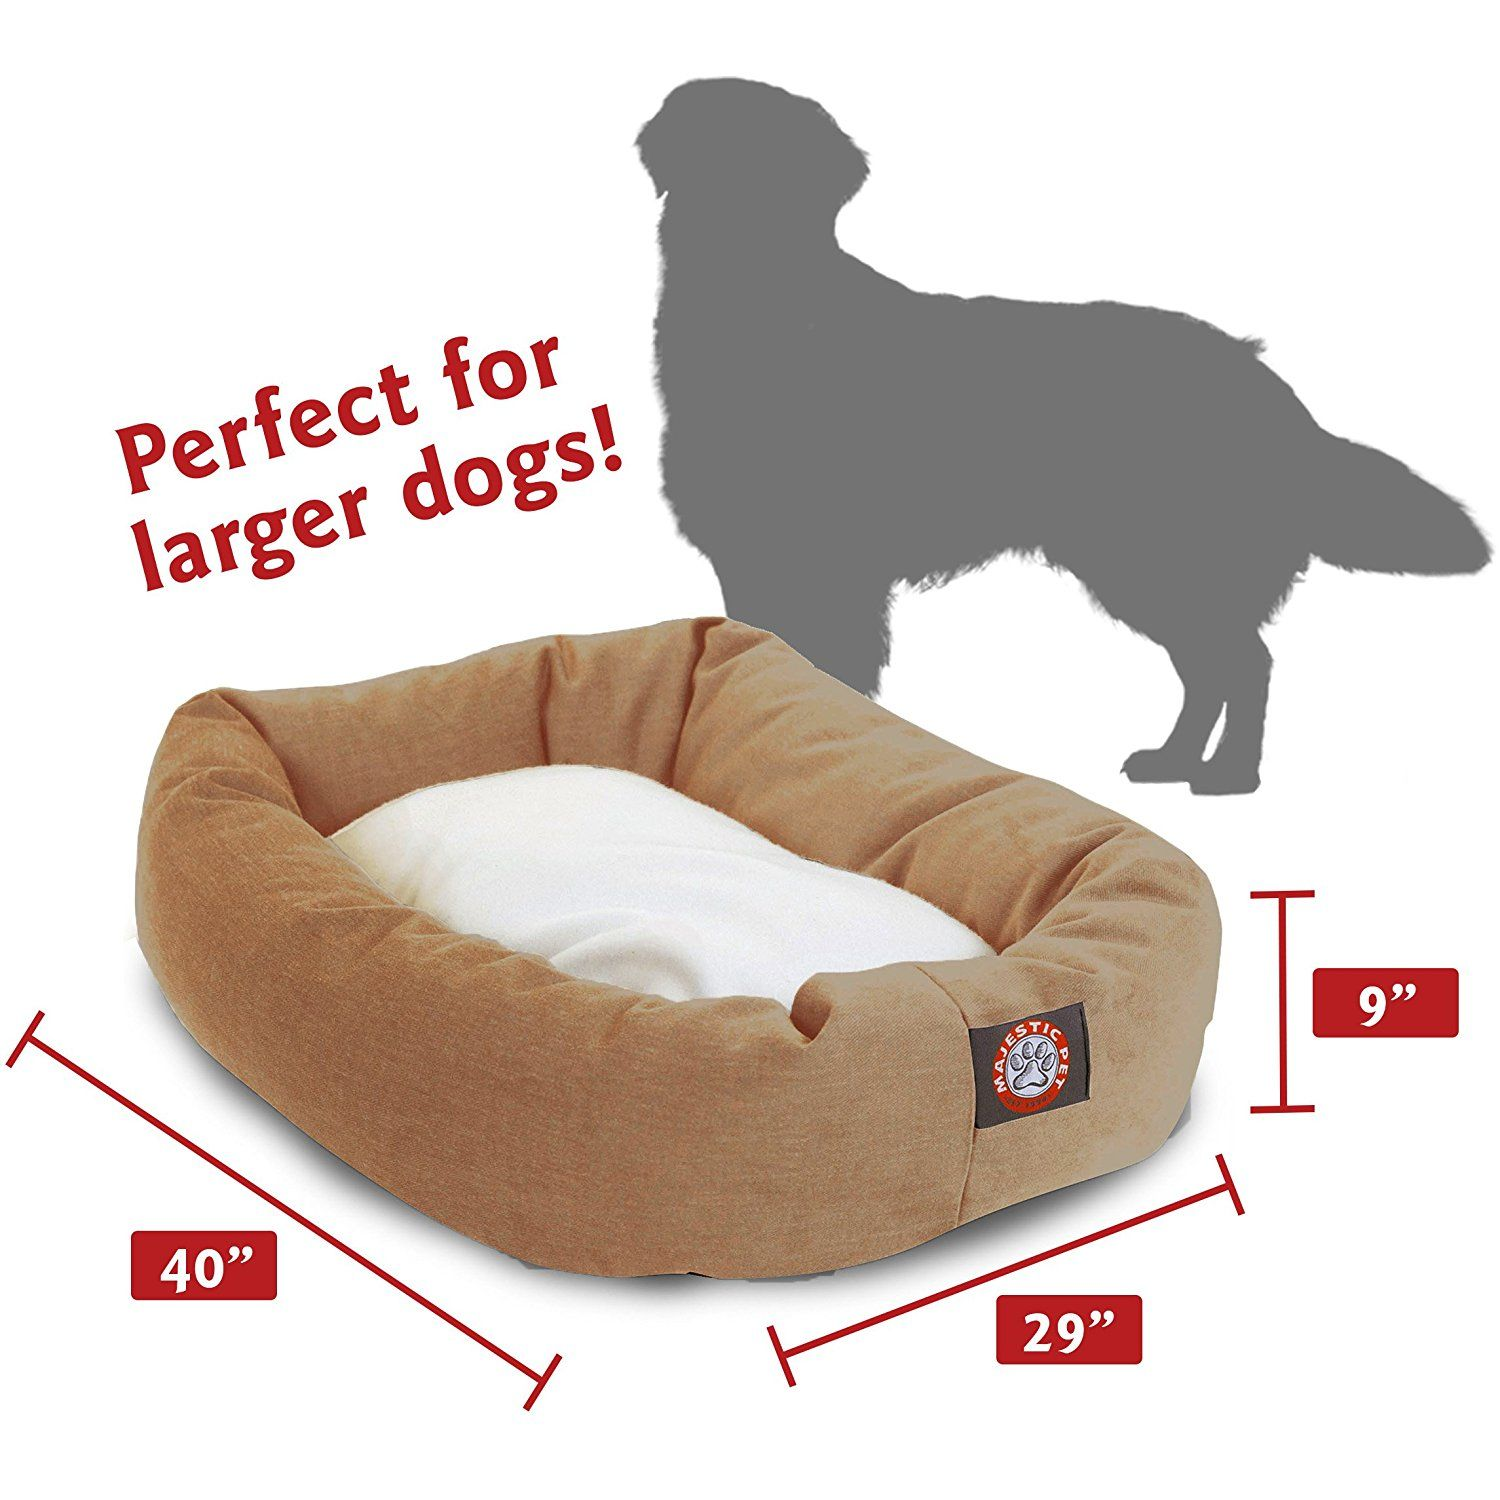 Joyelf Premium Edition Dog Bed Sofa With Solid Memory Foam Pet Bed And Lounge With Little Toy And Natural Cool Mat Memory Foam Dog Bed Dog Bed Dog Sofa Bed